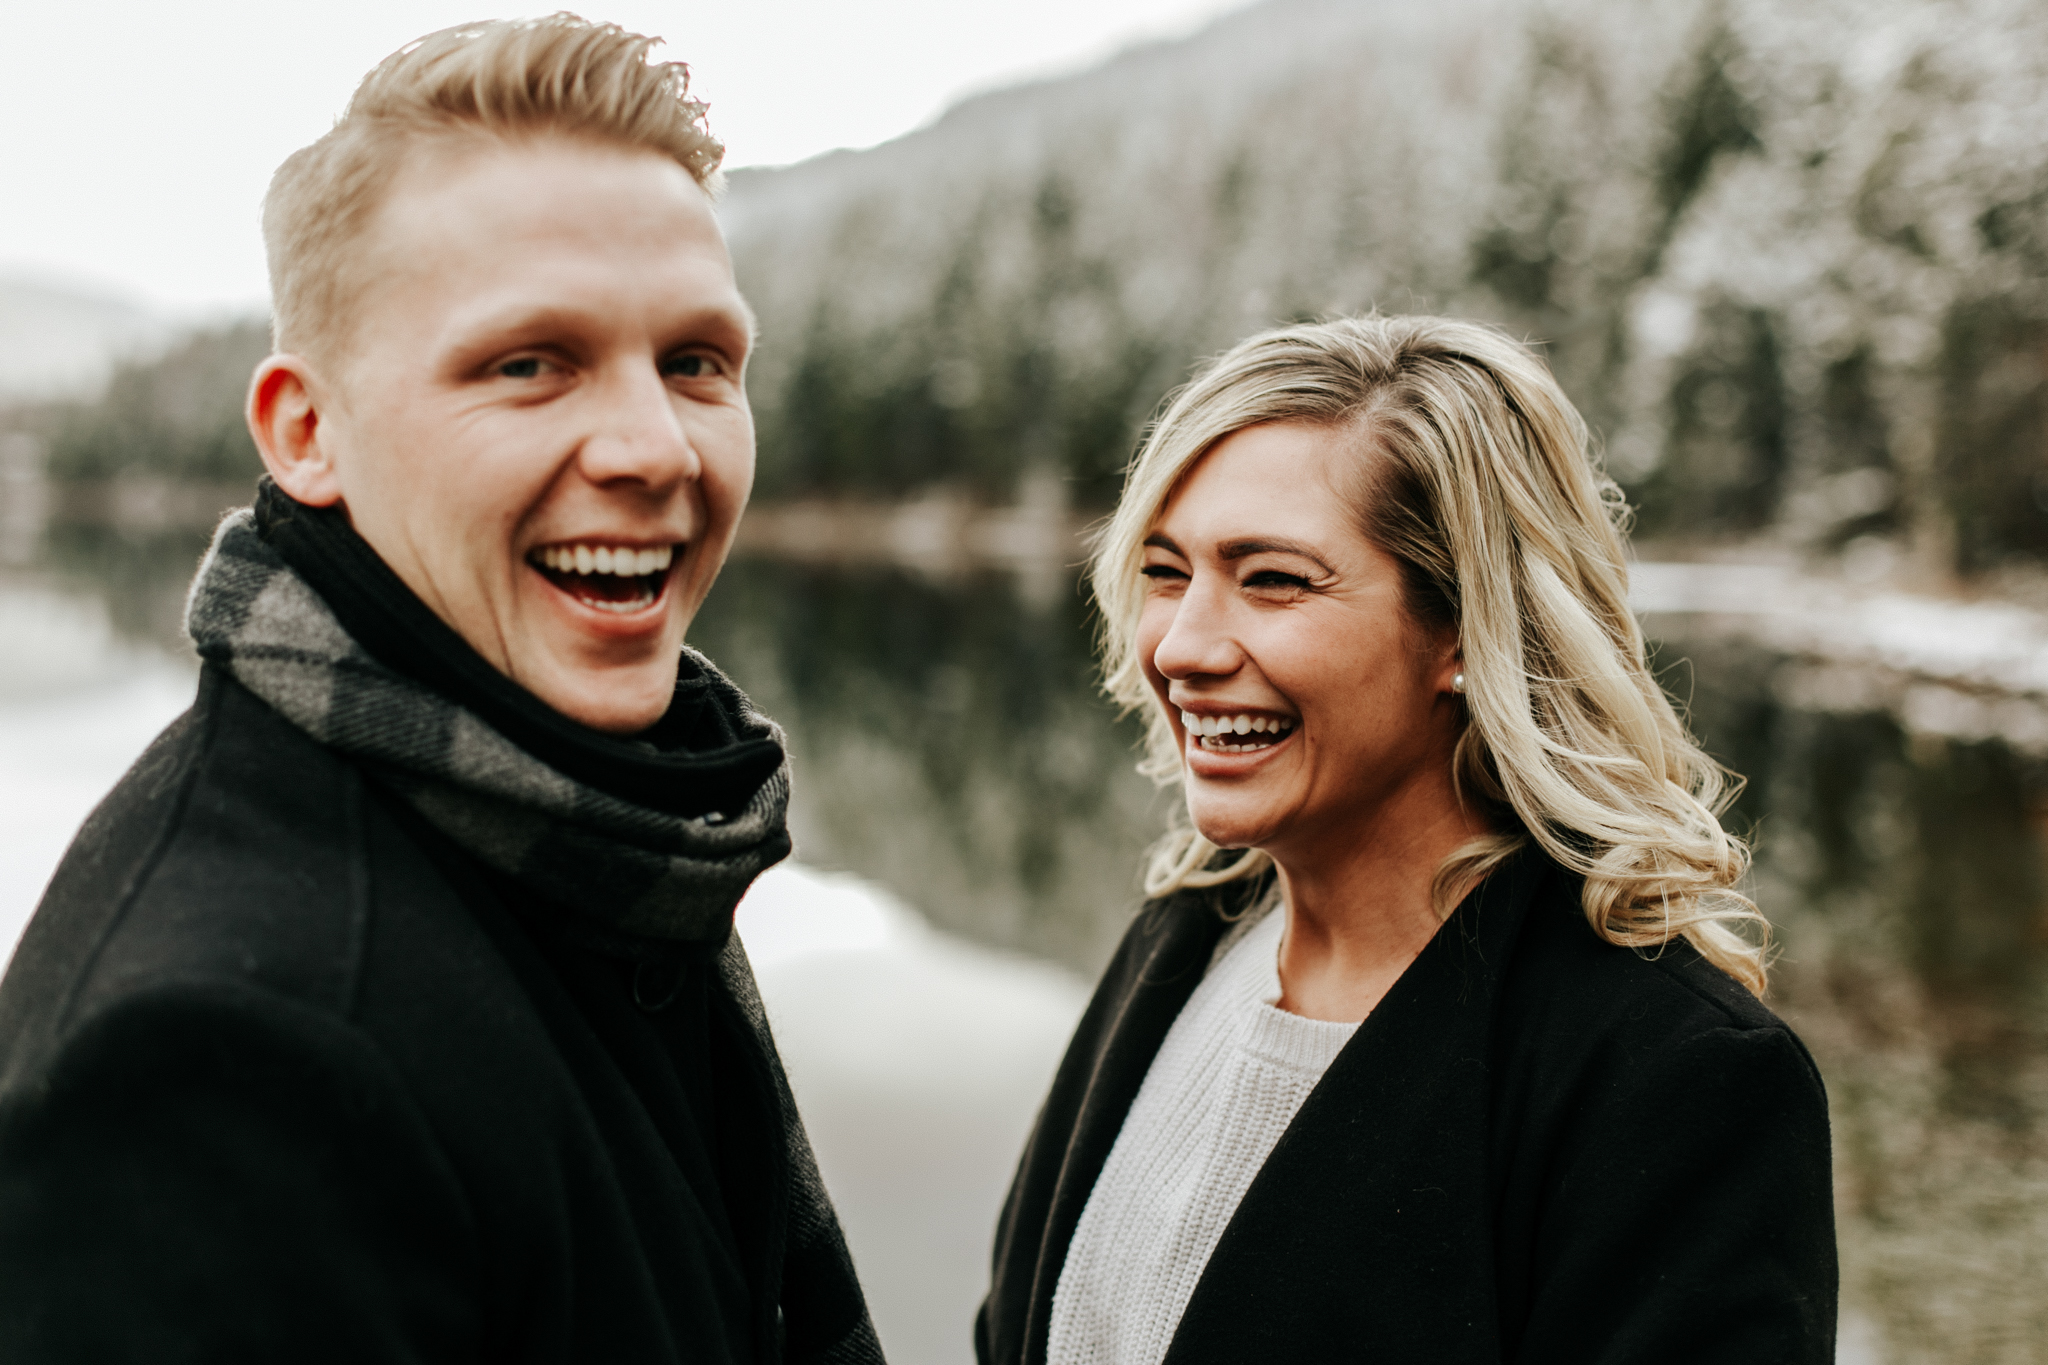 love-and-be-loved-photography-mountain-engagement-ashlyn-rob-perfect-fit-4-u-photo-image-picture-10.jpg